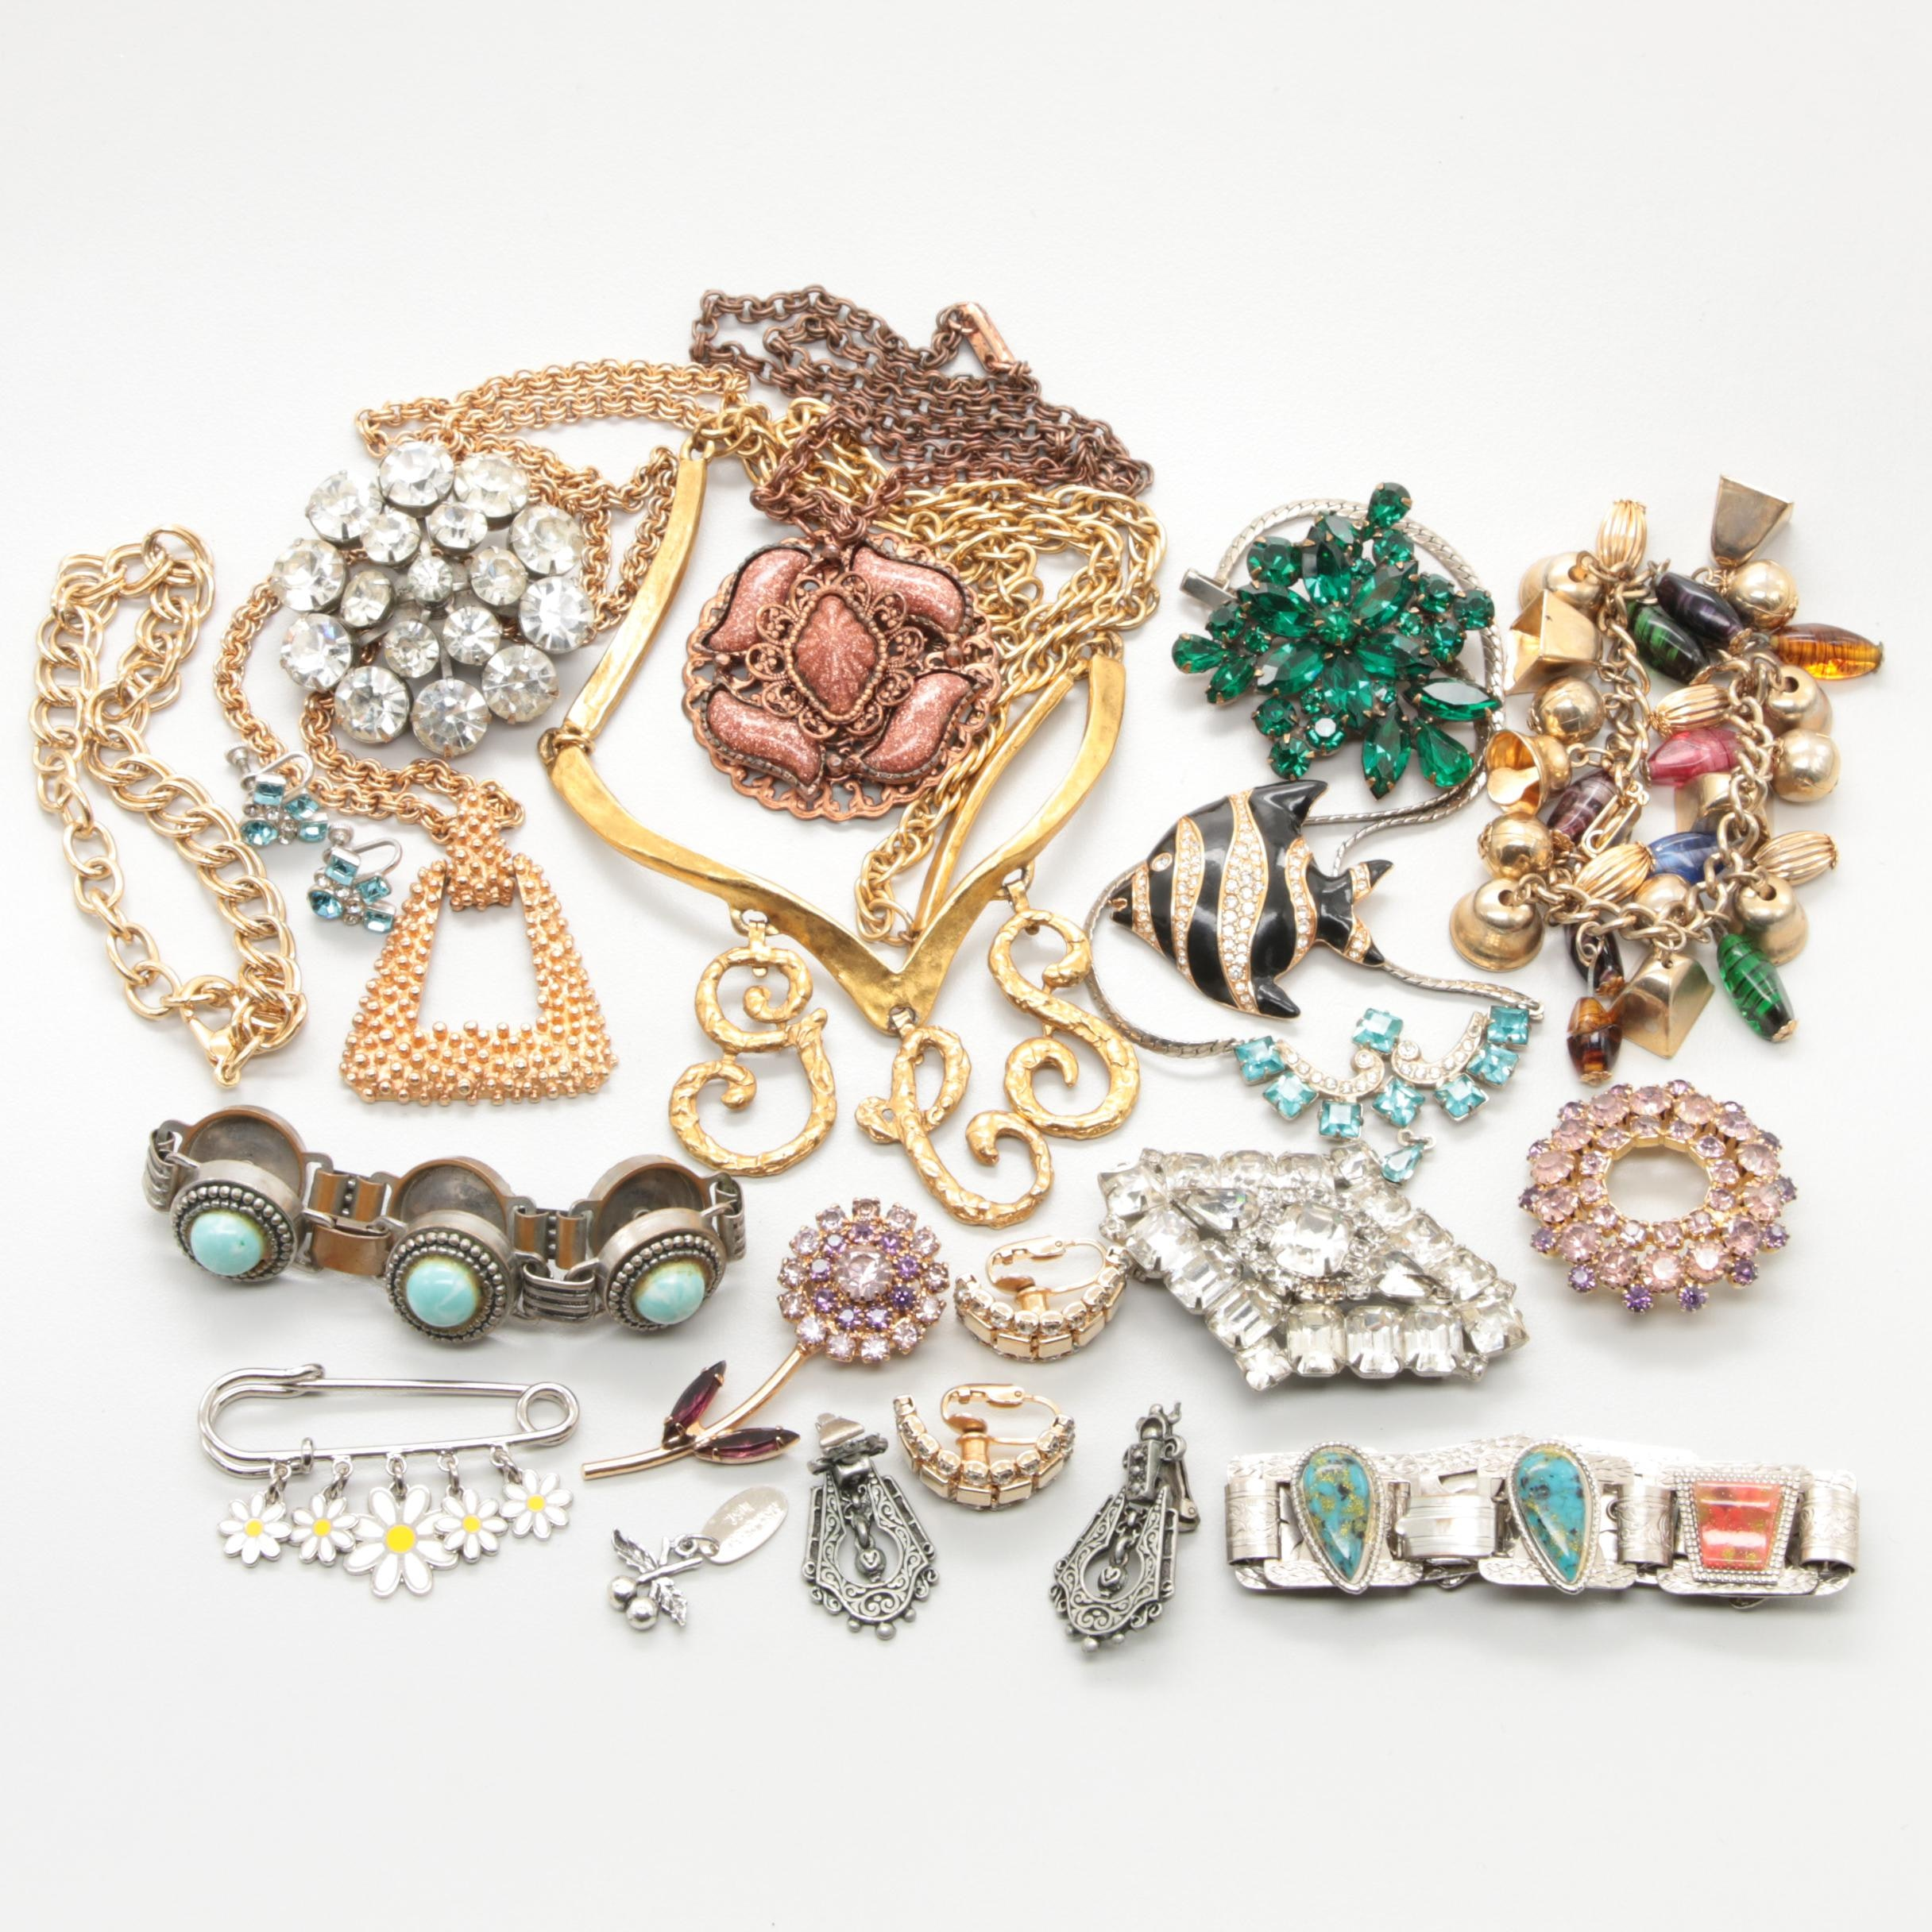 Jewelry Assortment Including Givenchy, Lisner, Weiss, Swarovski, Coach and More